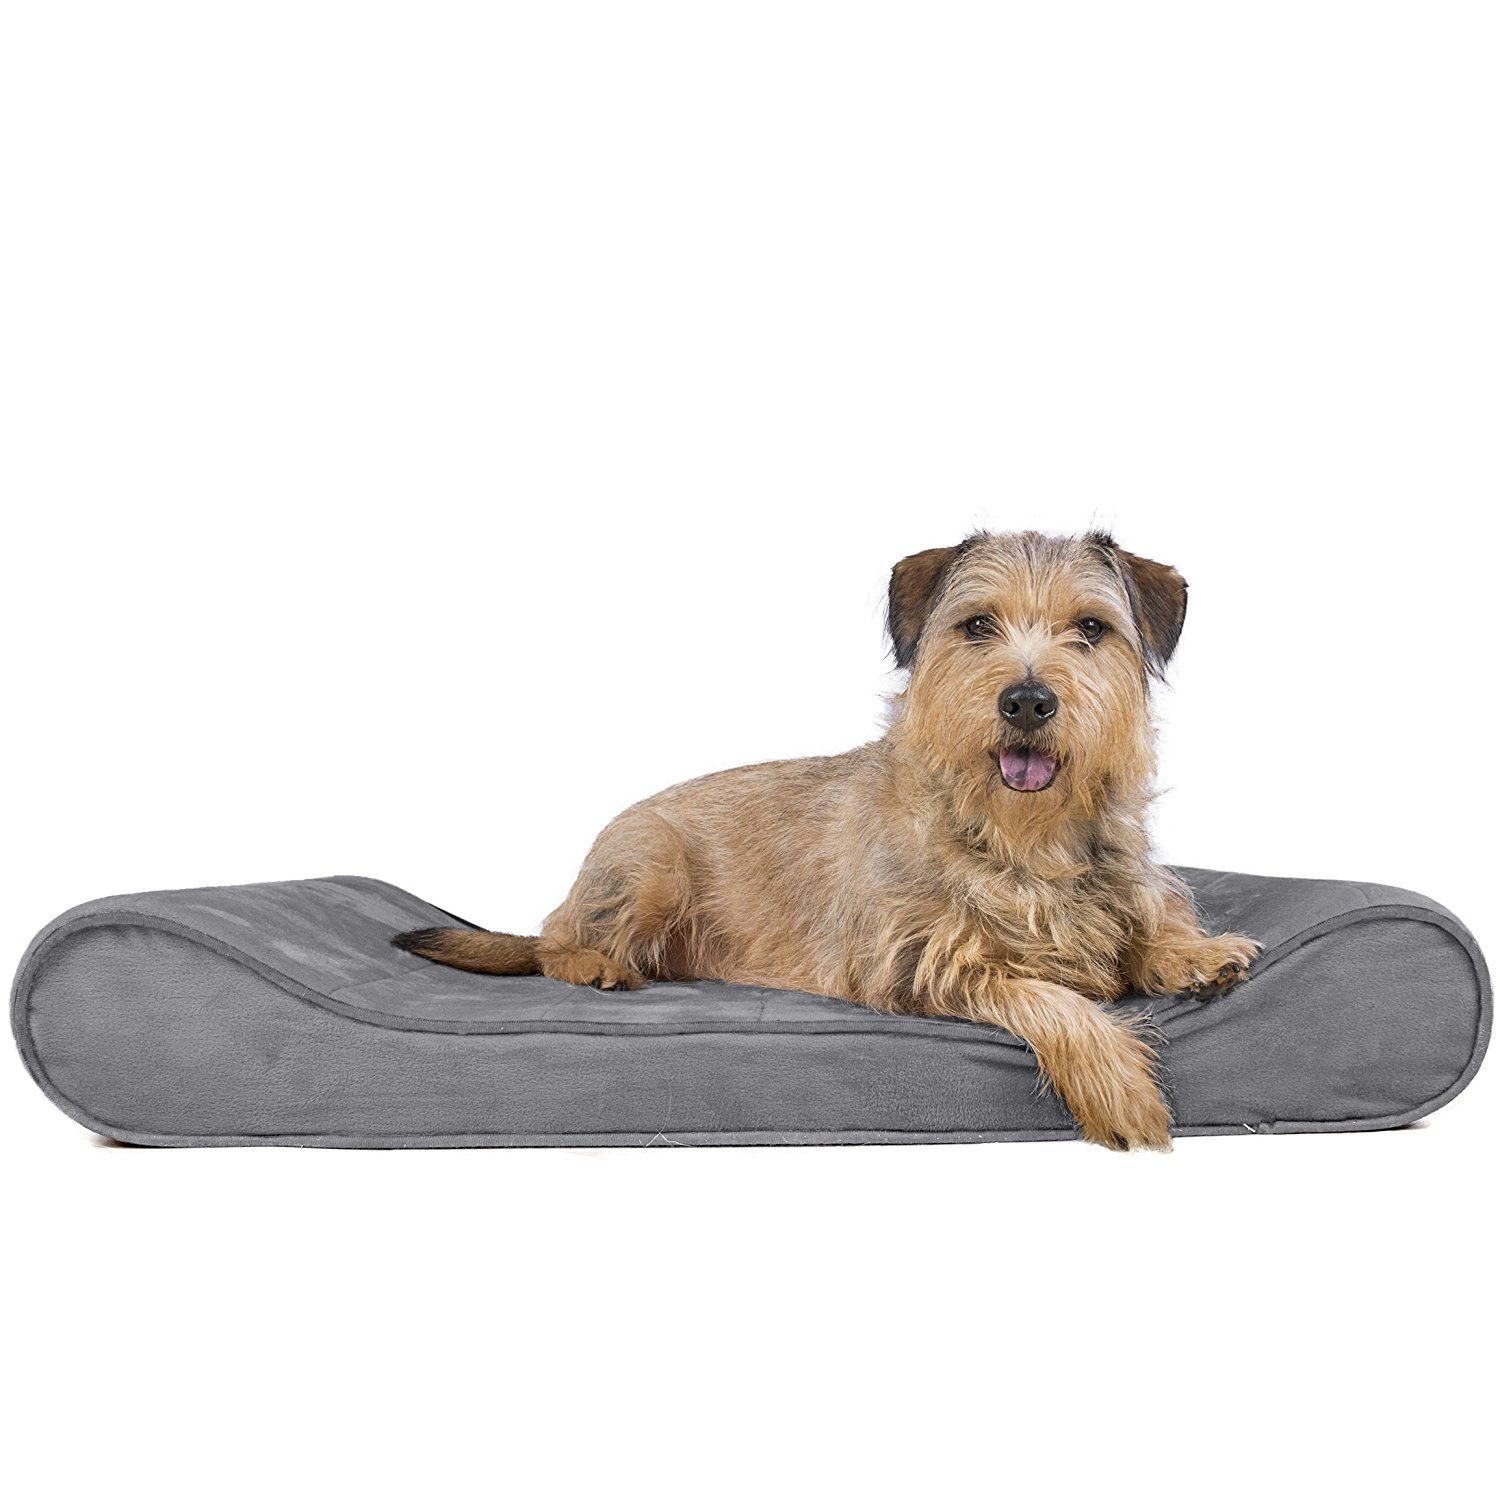 Furhaven Pet Small Microvelvet Luxe Lounger Orthopedic Pet